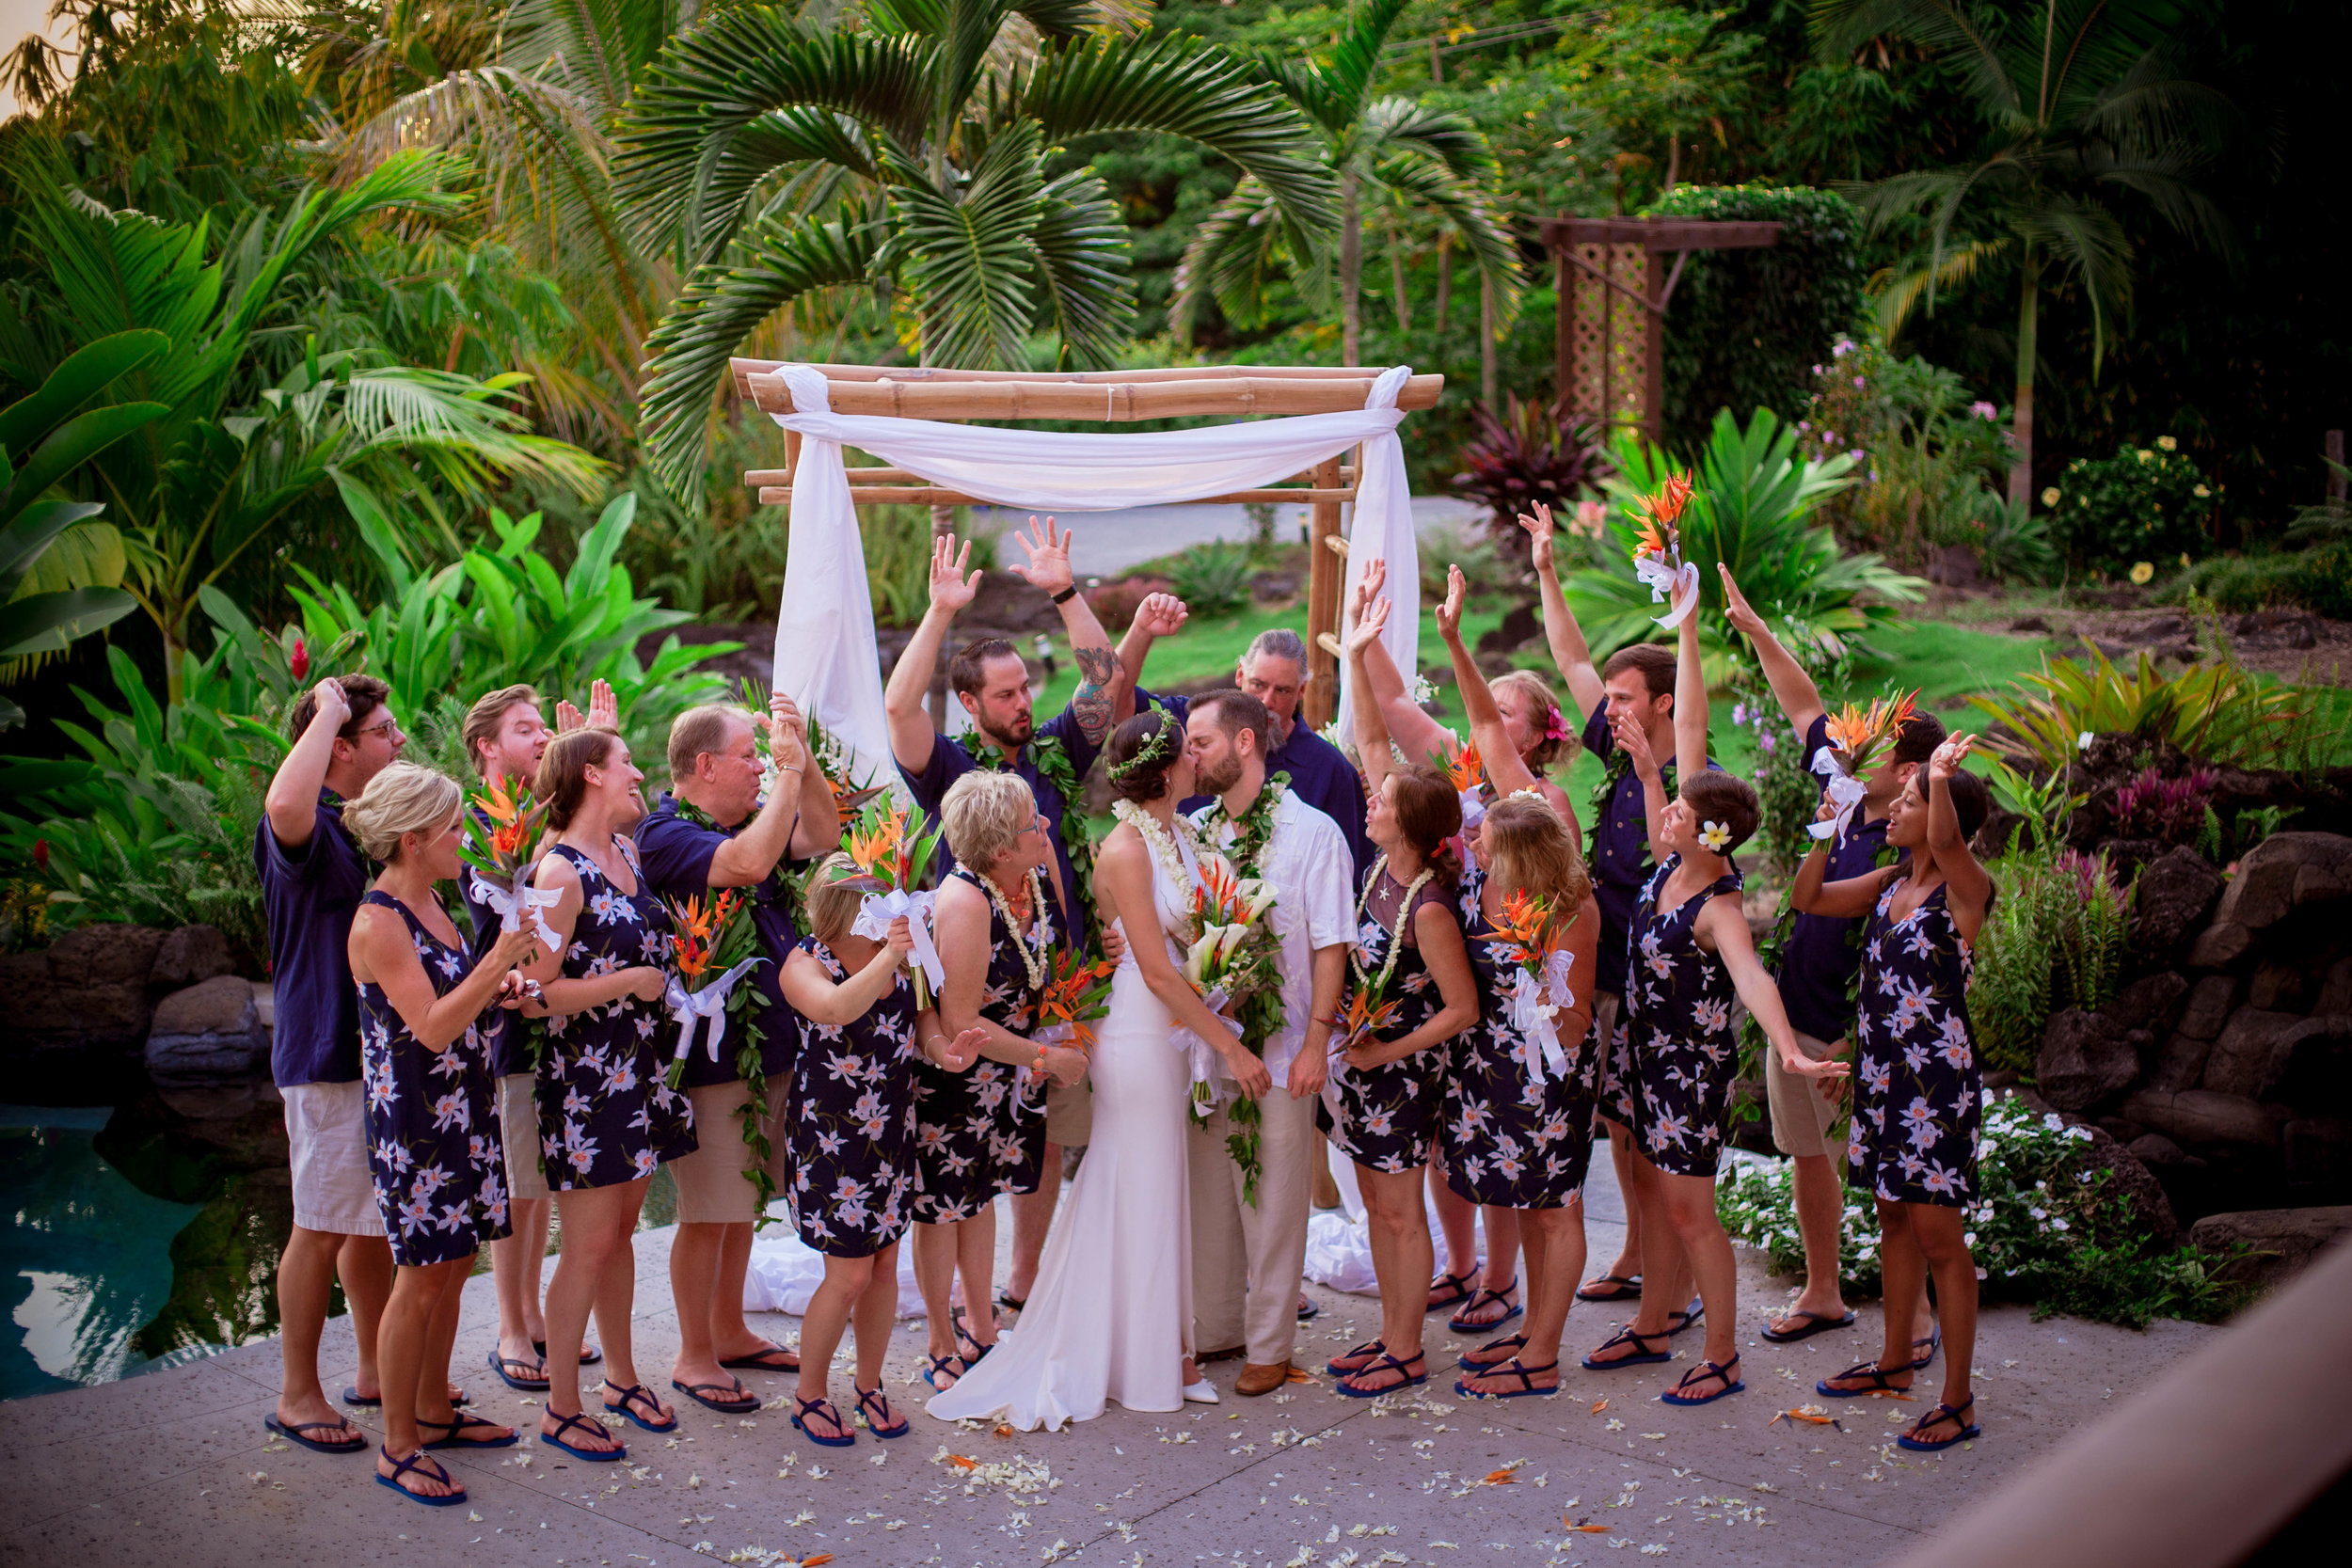 big island hawaii holualoa estate wedding 20160908181629-1kb.jpg